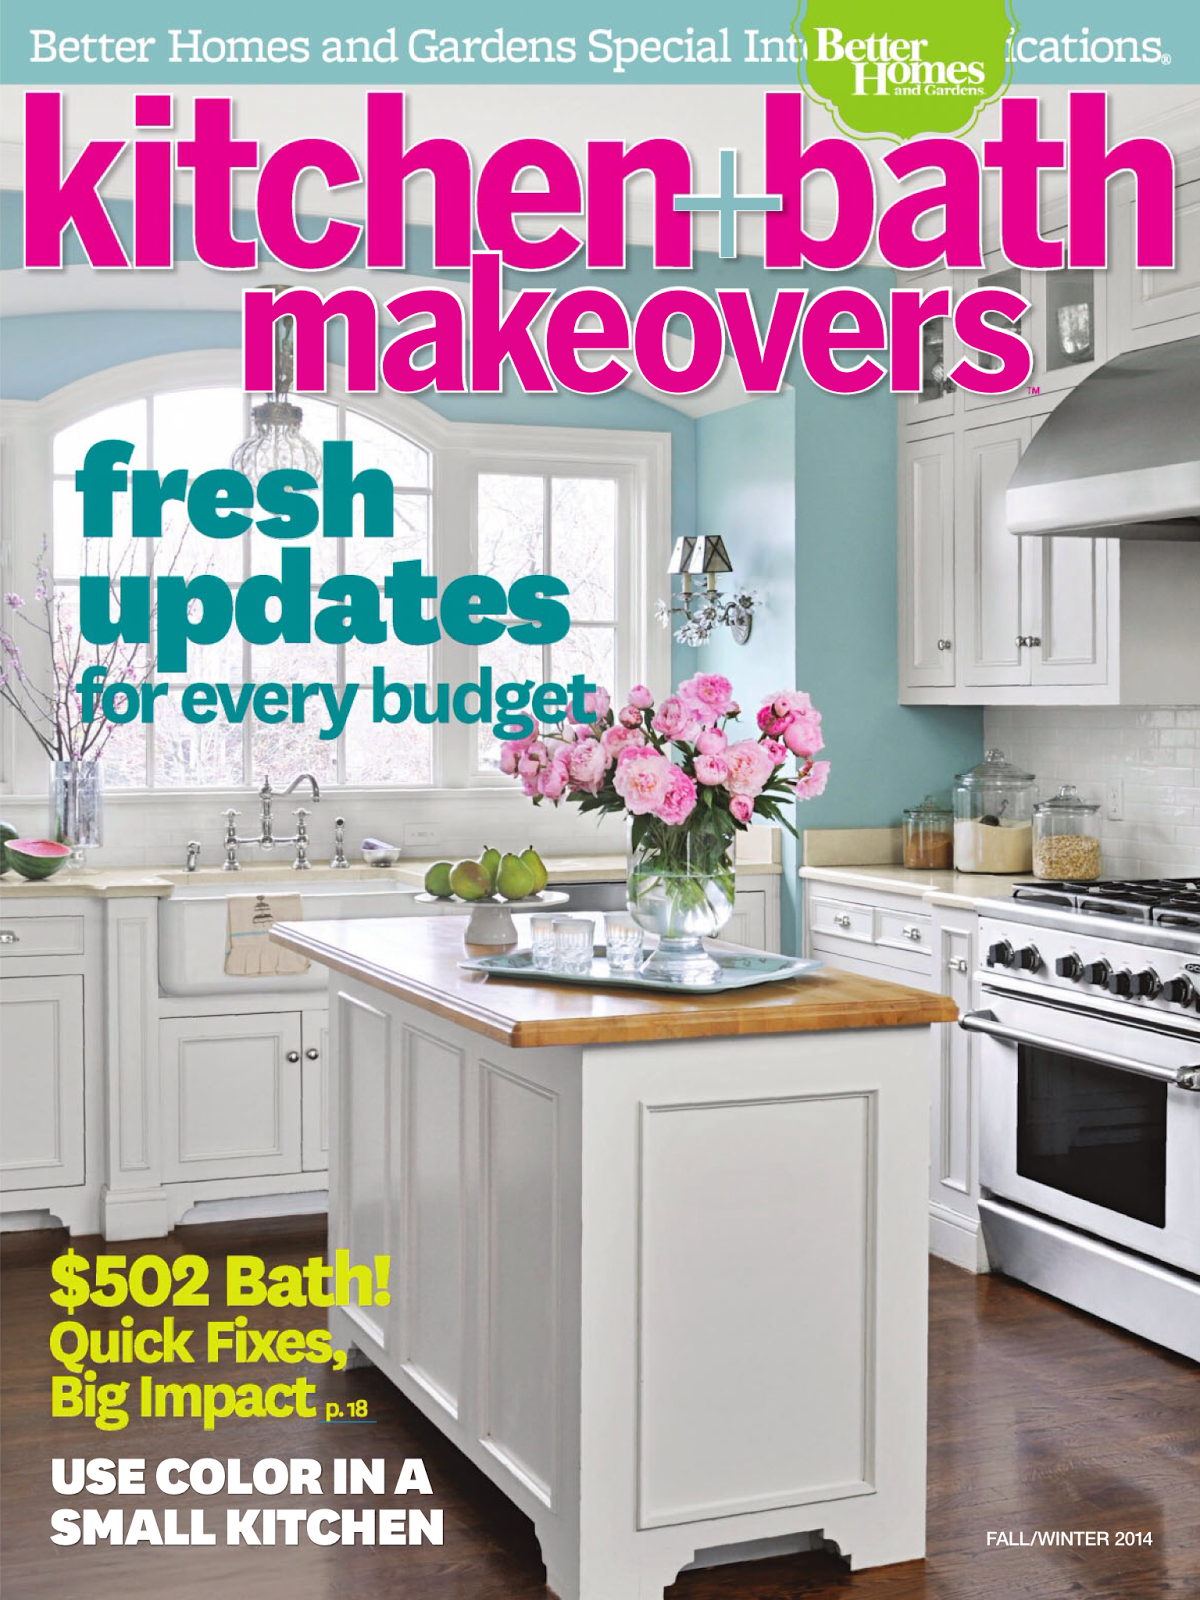 Better Homes and Garden Kitchen and Bath Makeovers Fall/Winter 2014